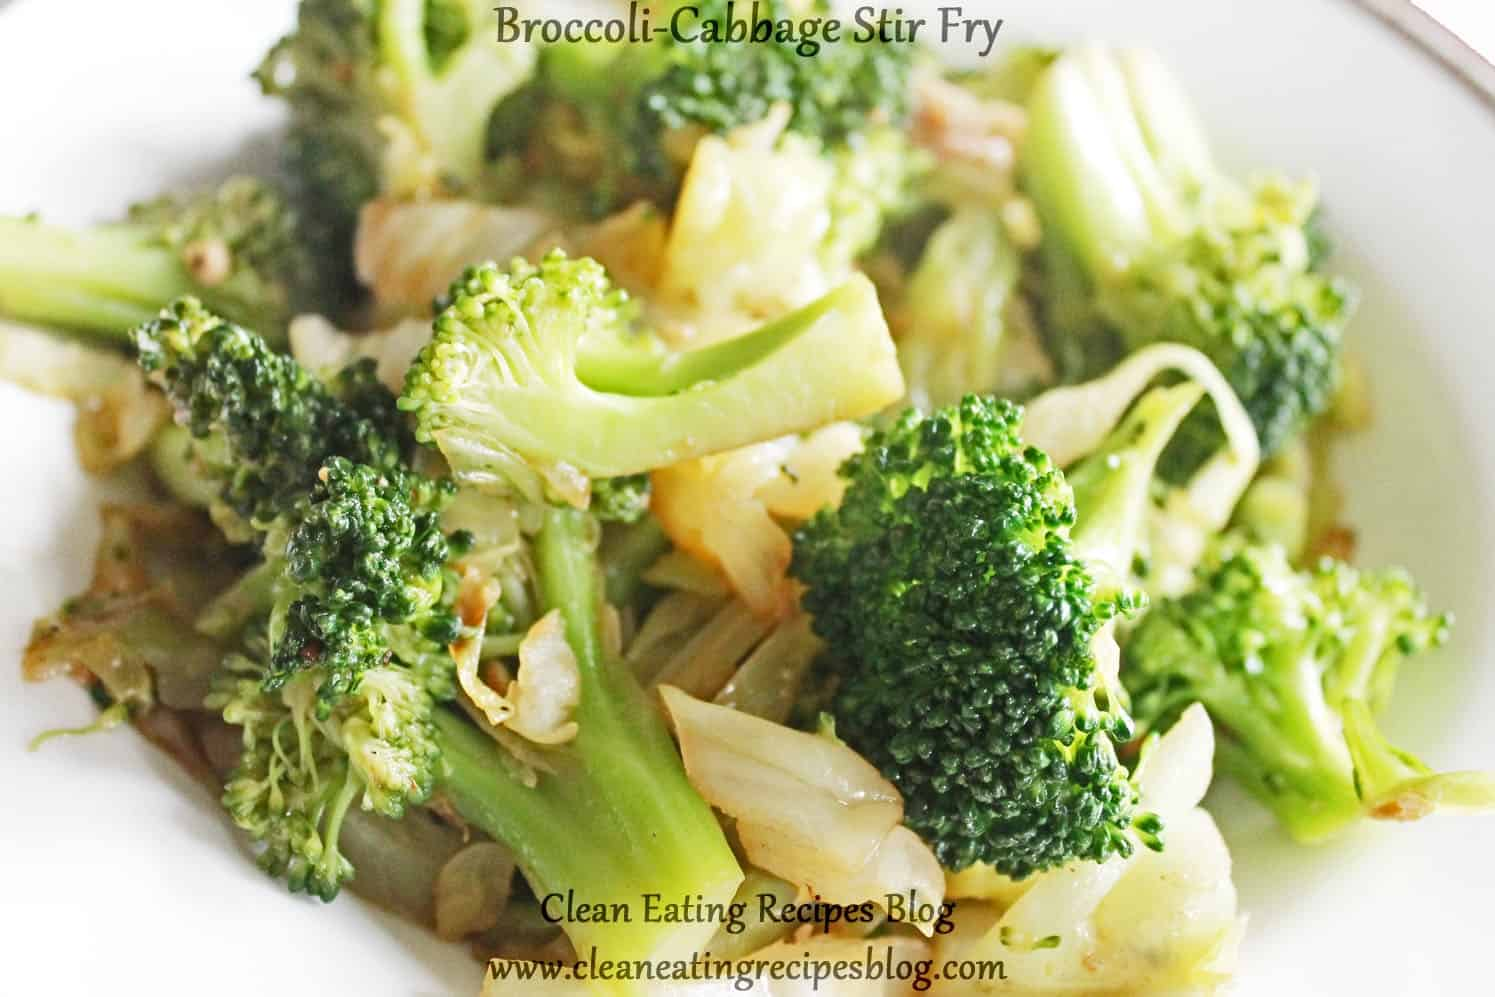 Broccoli cabbage stir fry